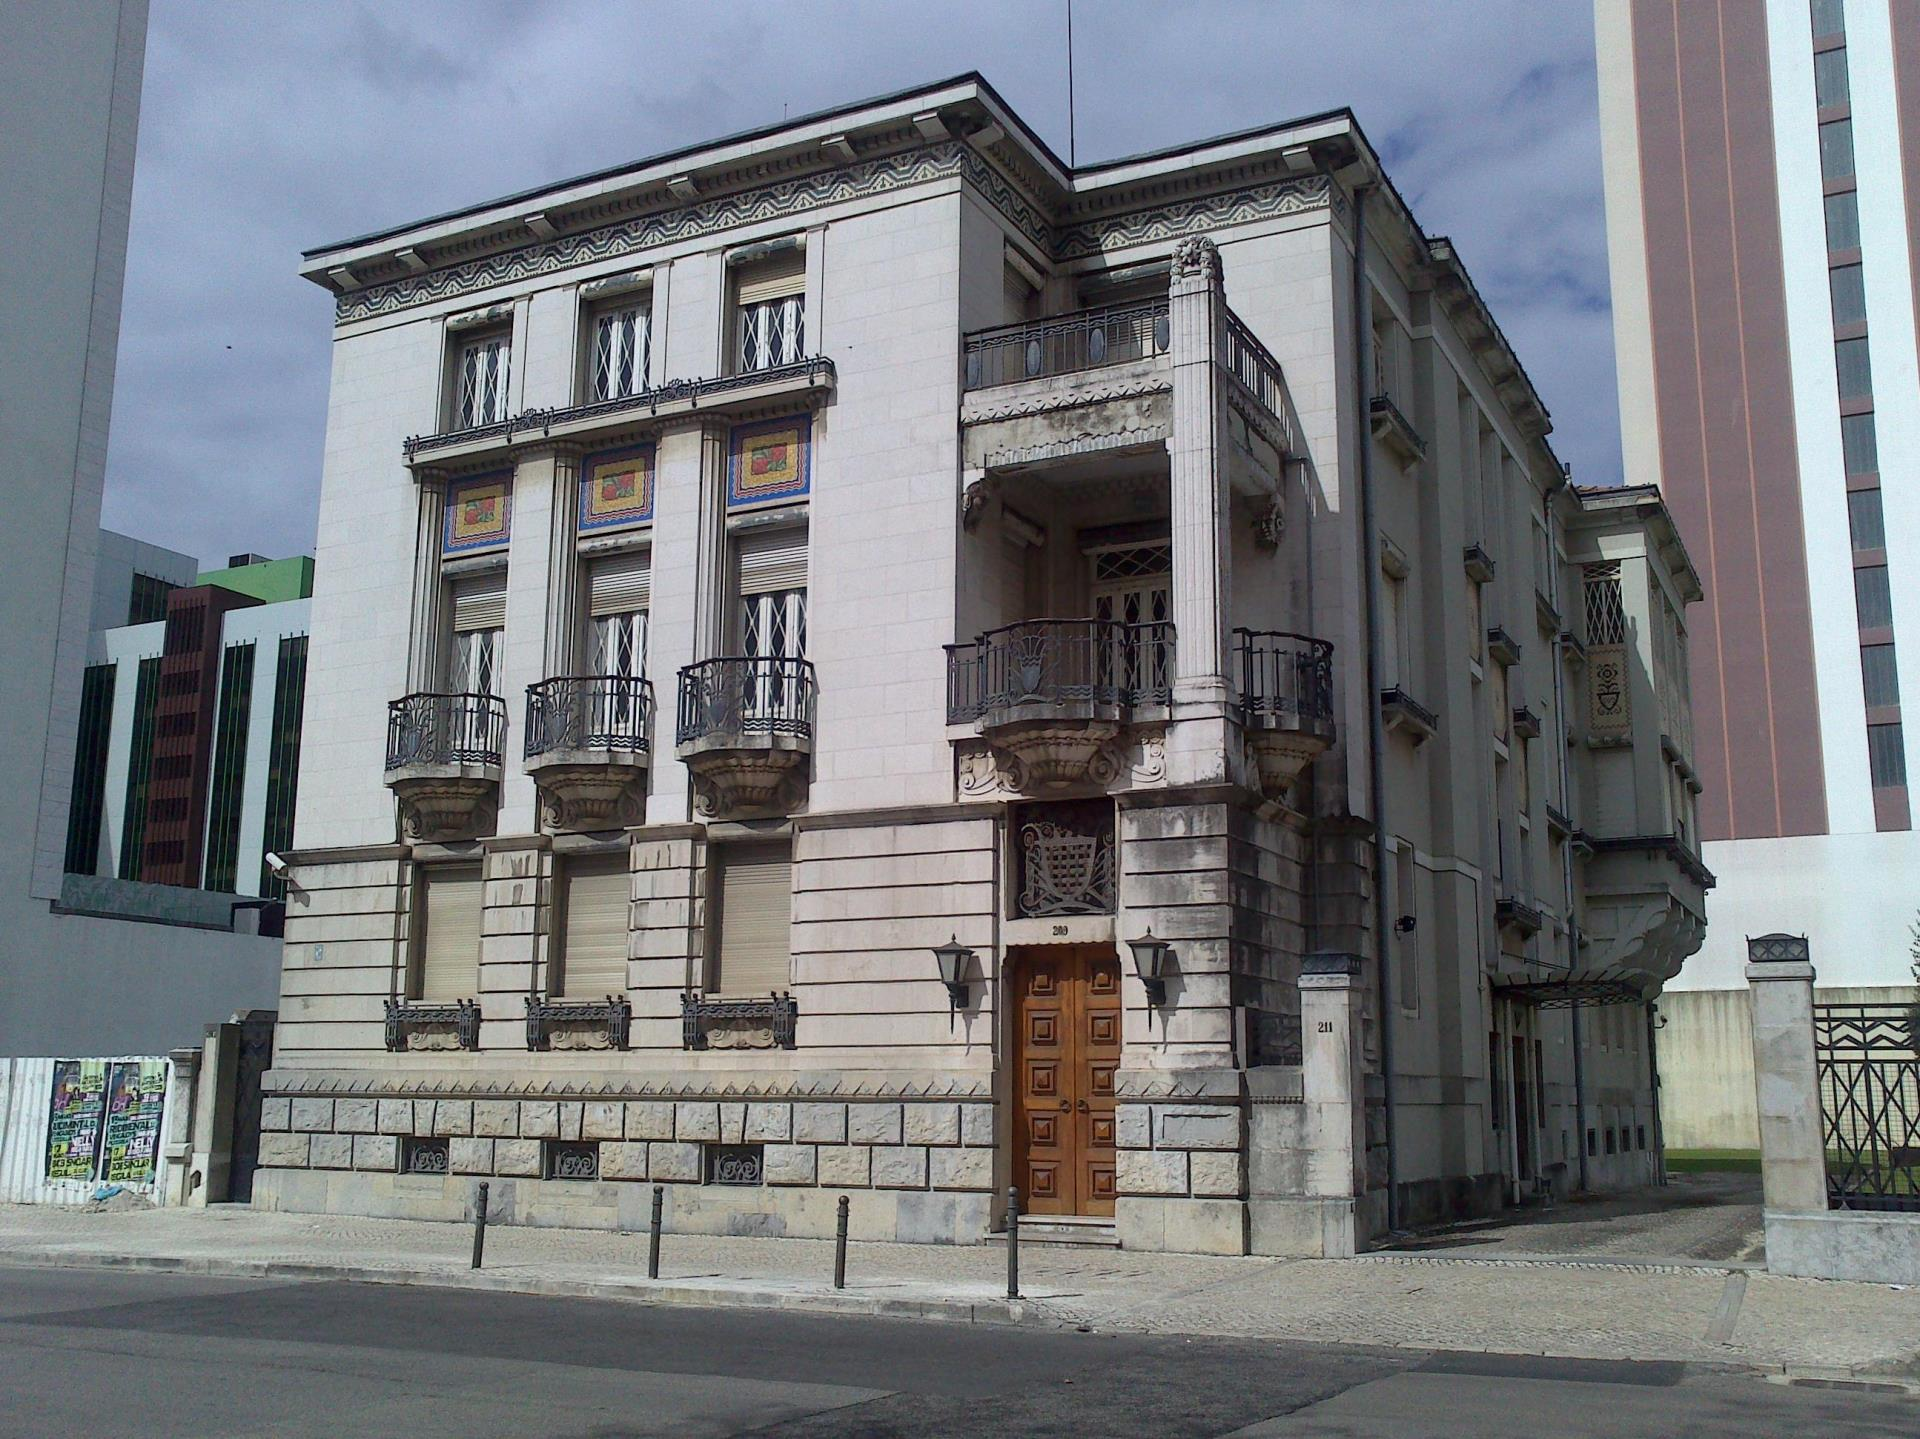 Casa Unifamiliar por un Venta en Detached house, 6 bedrooms, for Sale Lisboa, Lisboa Portugal